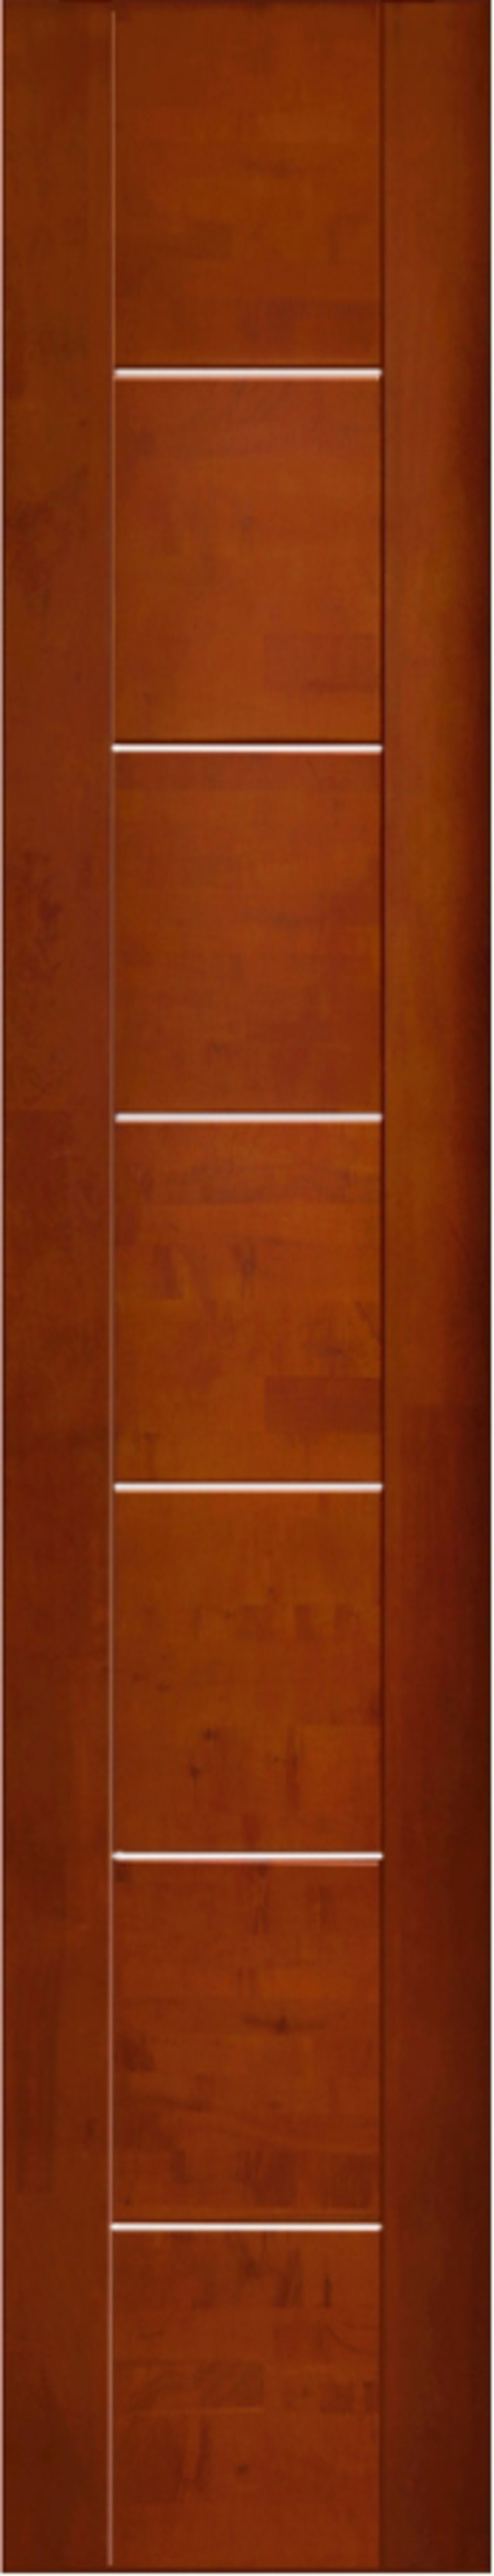 Ignisterra S.A. Classic style windows & doors Wood Brown